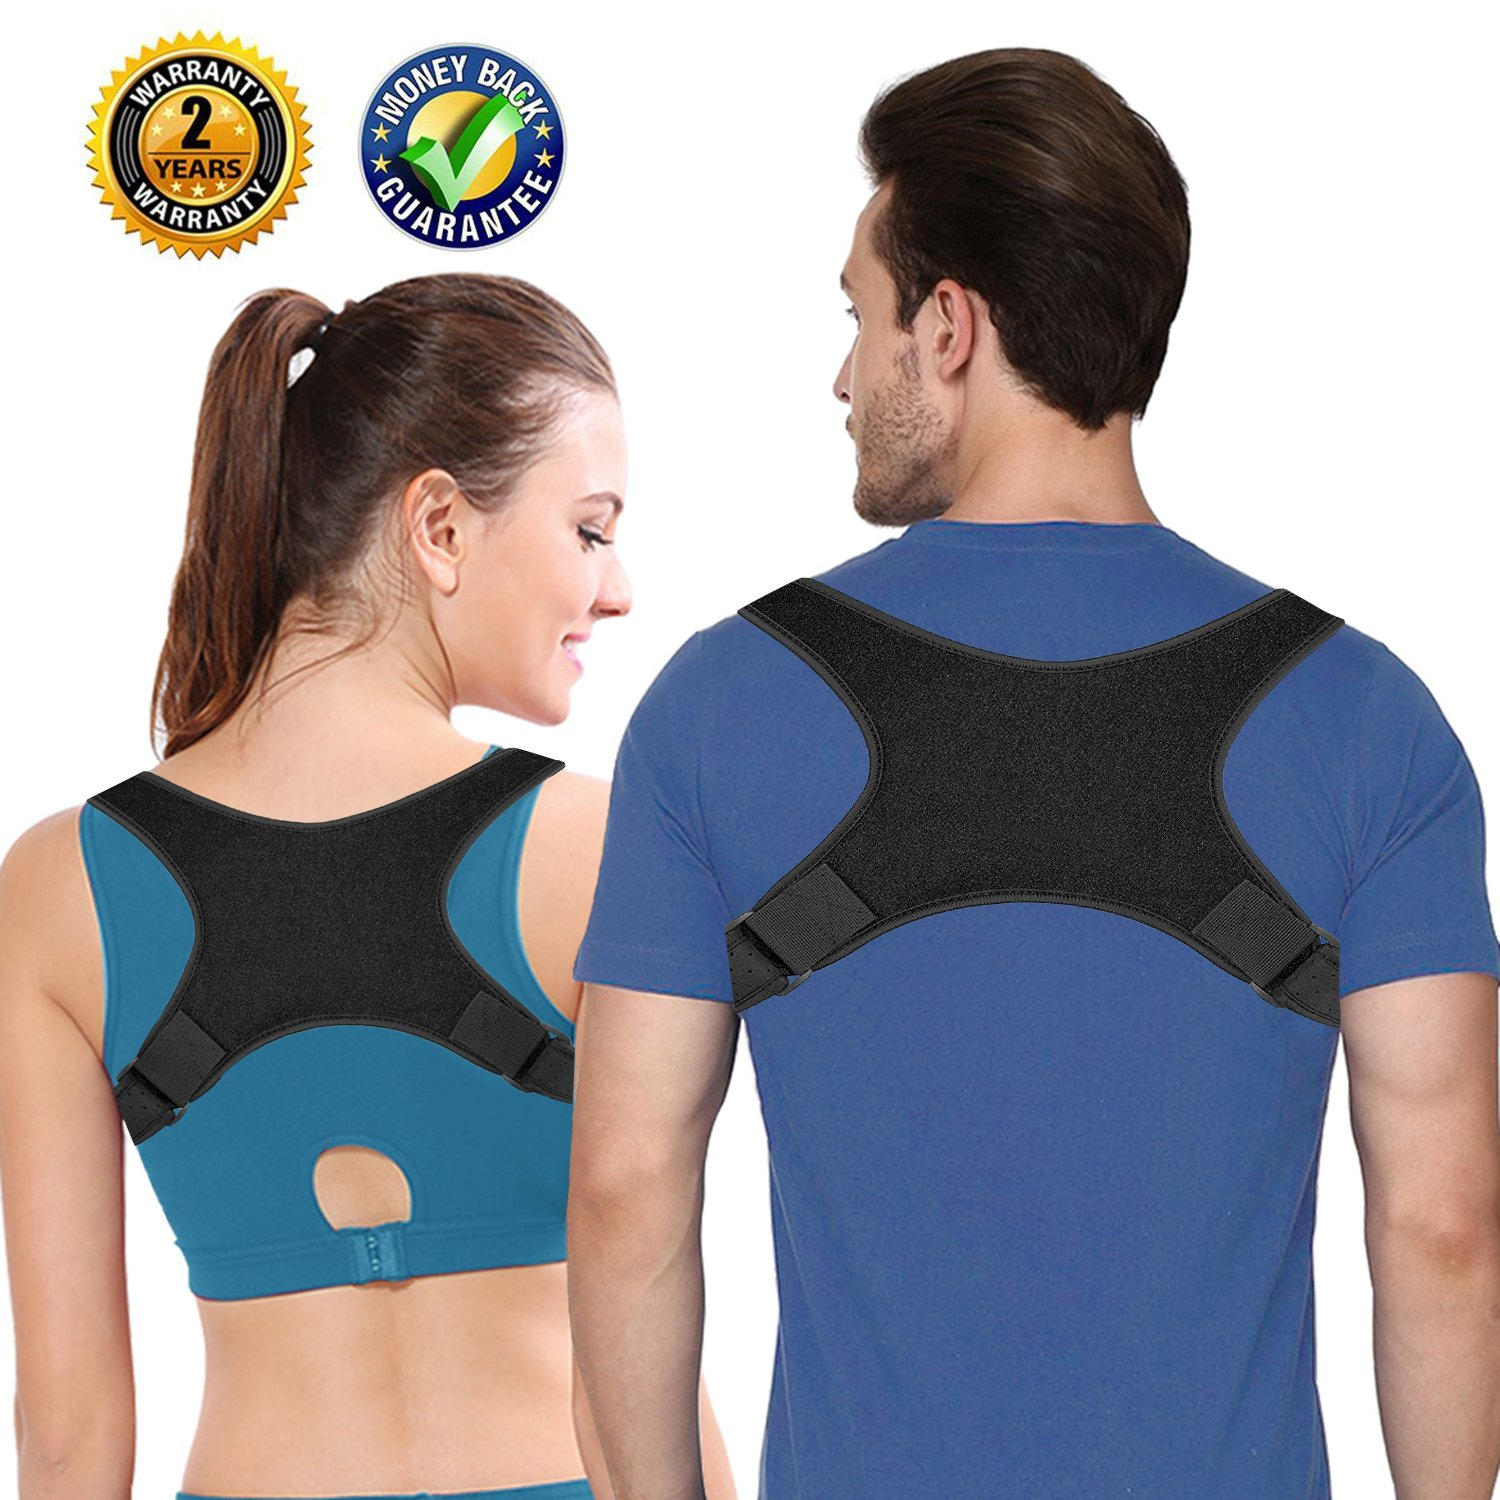 Back Brace Posture Corrector | Back Pain Relief | Back Neck Shoulder Chest Support to Prevent Slouching & Hunching | 26.8''-46.5'' Chest Circumference of Men Women Kids (Black, Large)